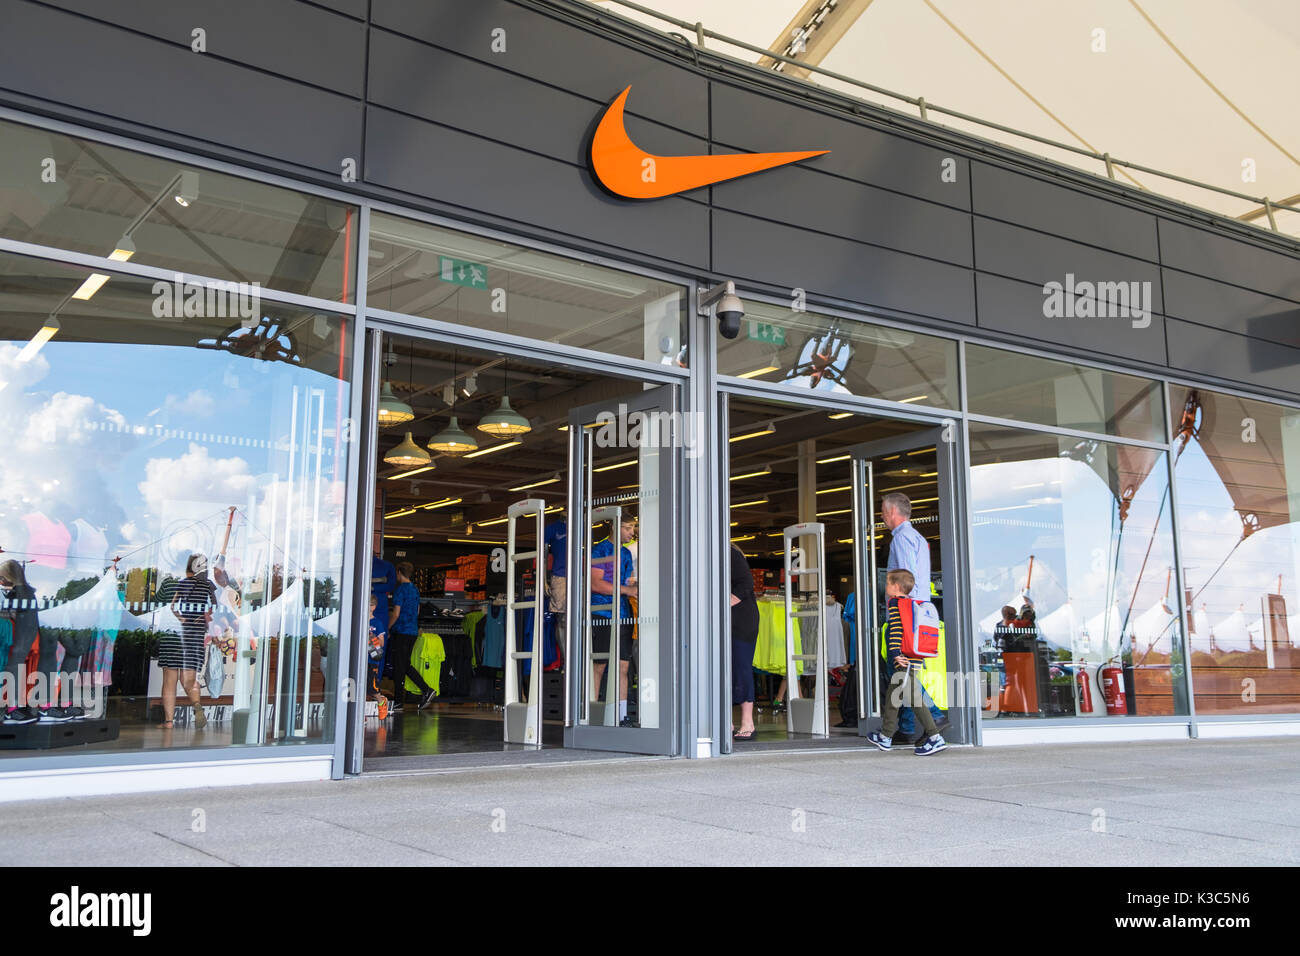 Nike store, outlet centre, ashford, uk